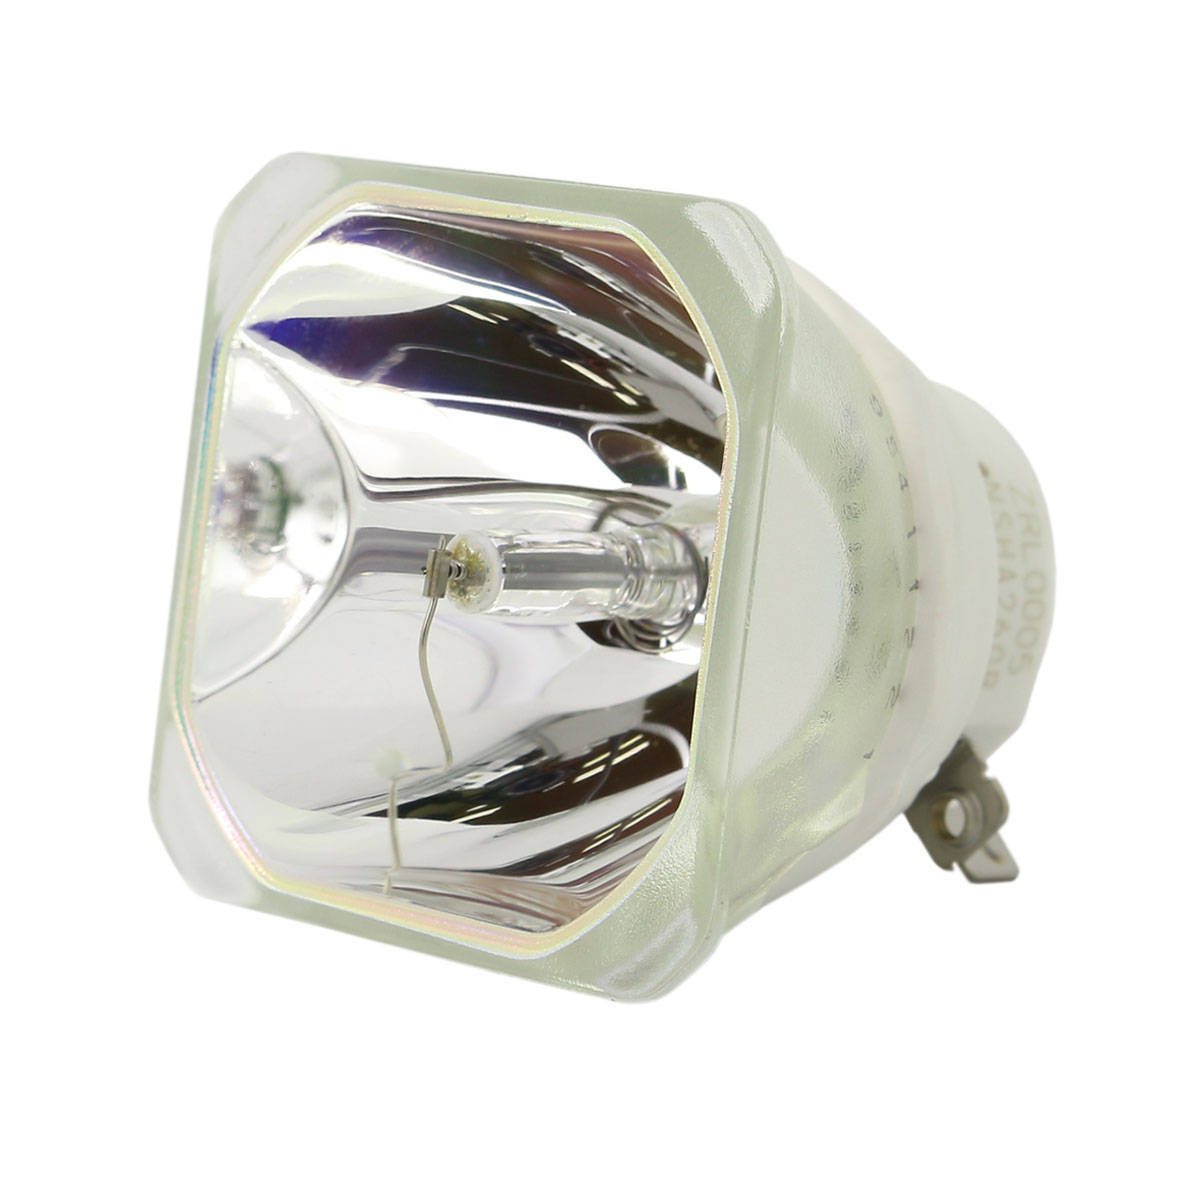 Compatible Bare Bulb DT01051 for HITACHI CP-X4010 CP-X4010E CPX4010E CP-X4020 CP-X4020E Projector Bulb Lamp without housing